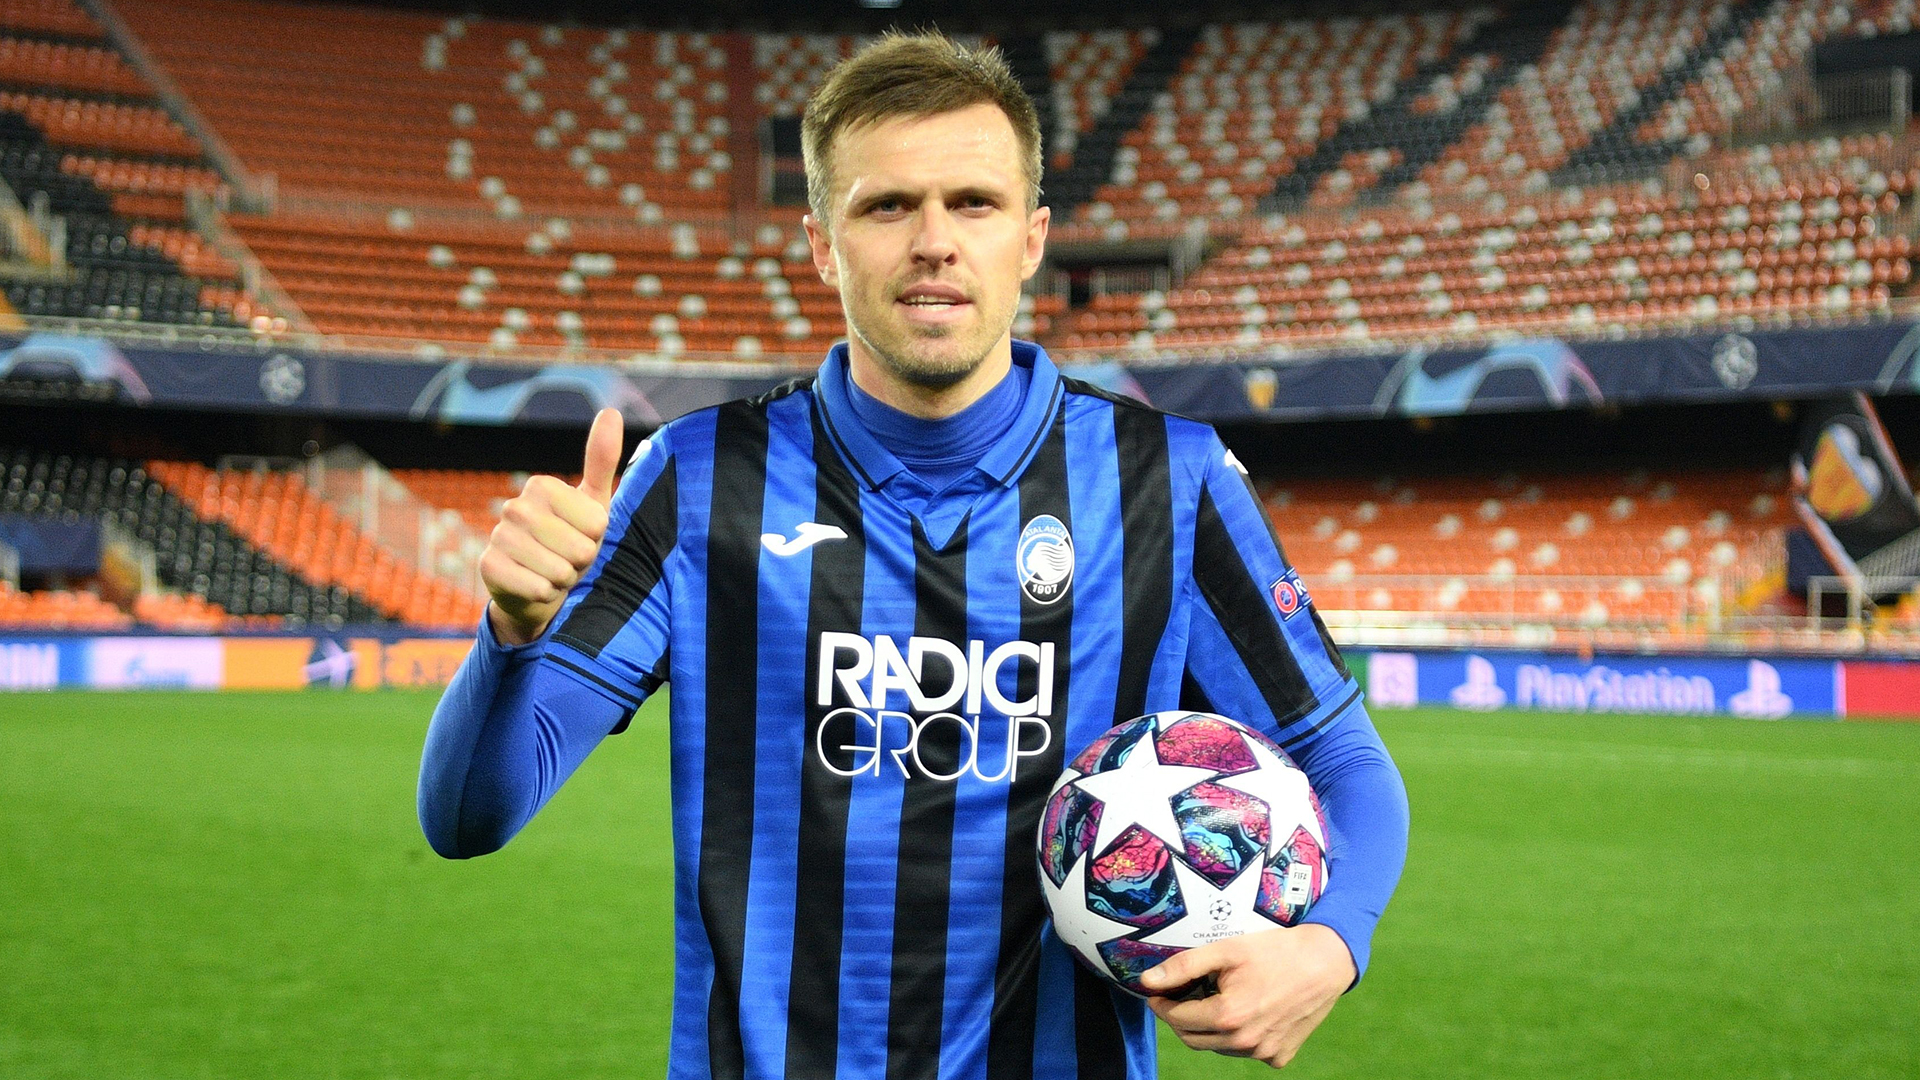 With more goals than Ronaldo, Josip Ilicic is the unlikely star of 2020 |  Goal.com